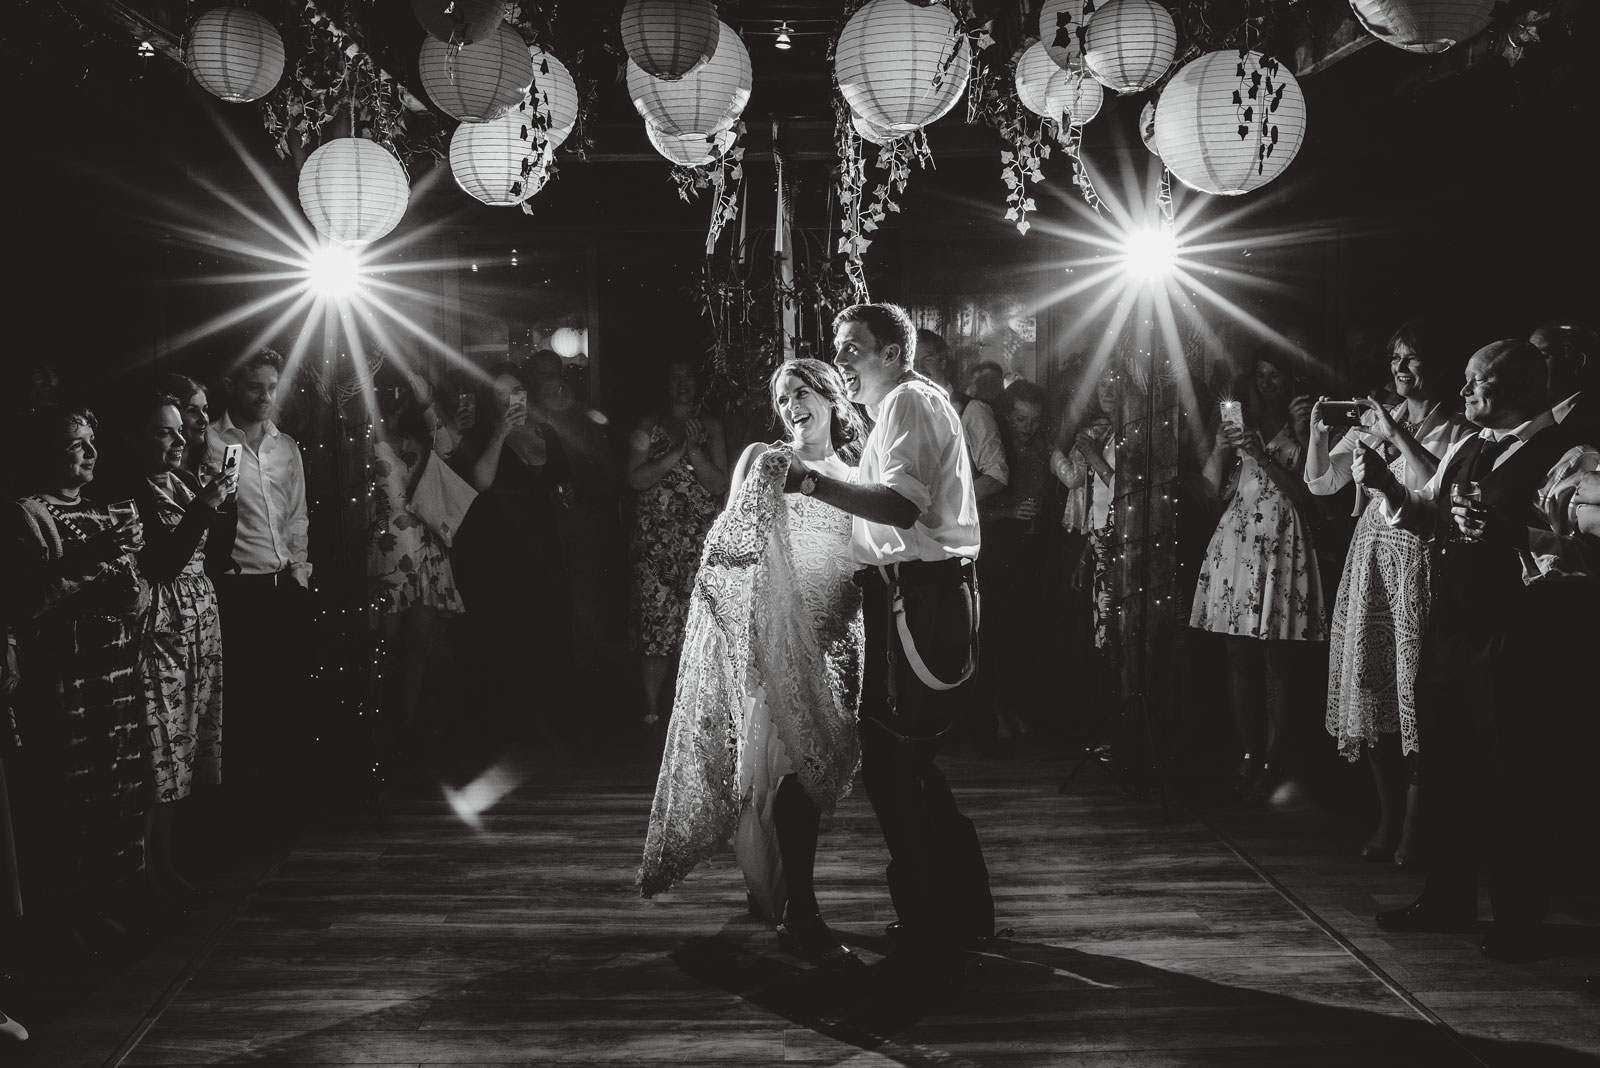 emily and bobs first dance as man and wife at abbey house gardens in wiltshire